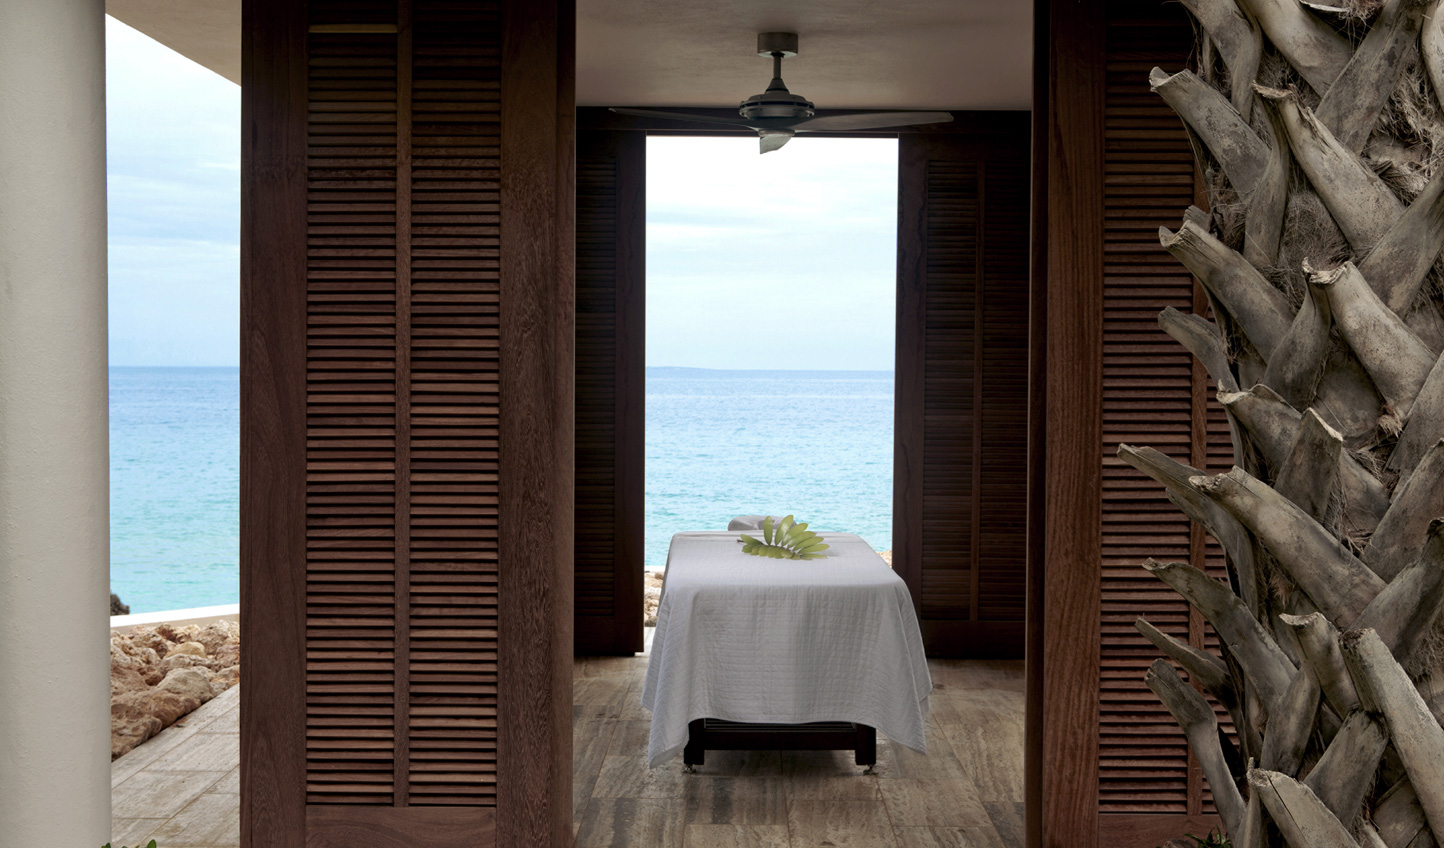 A spa with a natural soundtrack of waves crashing? Sign us up.